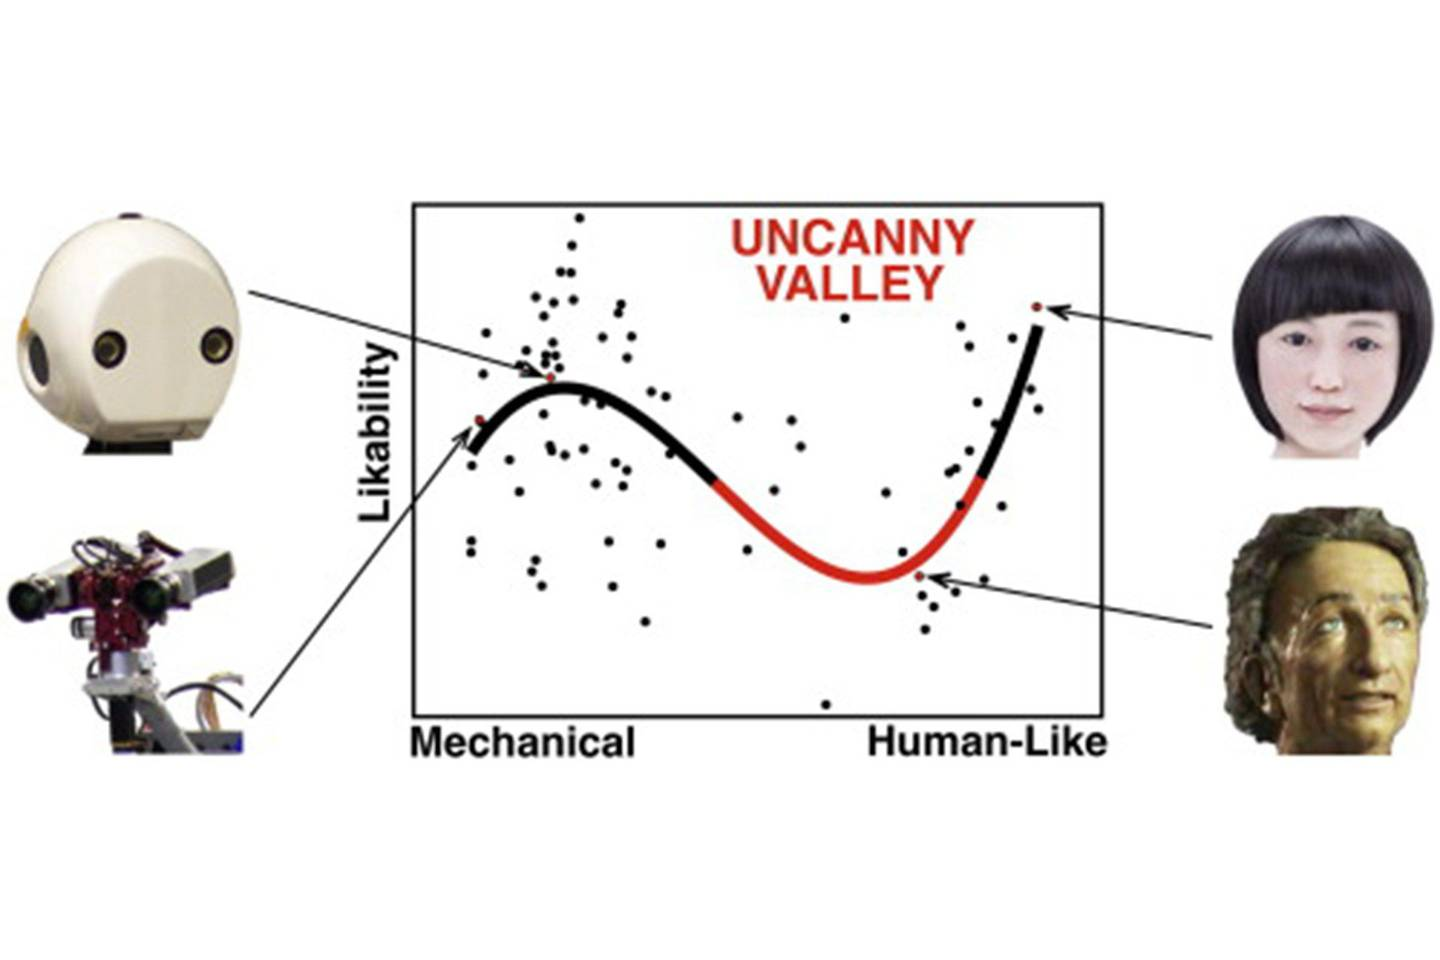 Uncanny valley is real, says study | WIRED UK